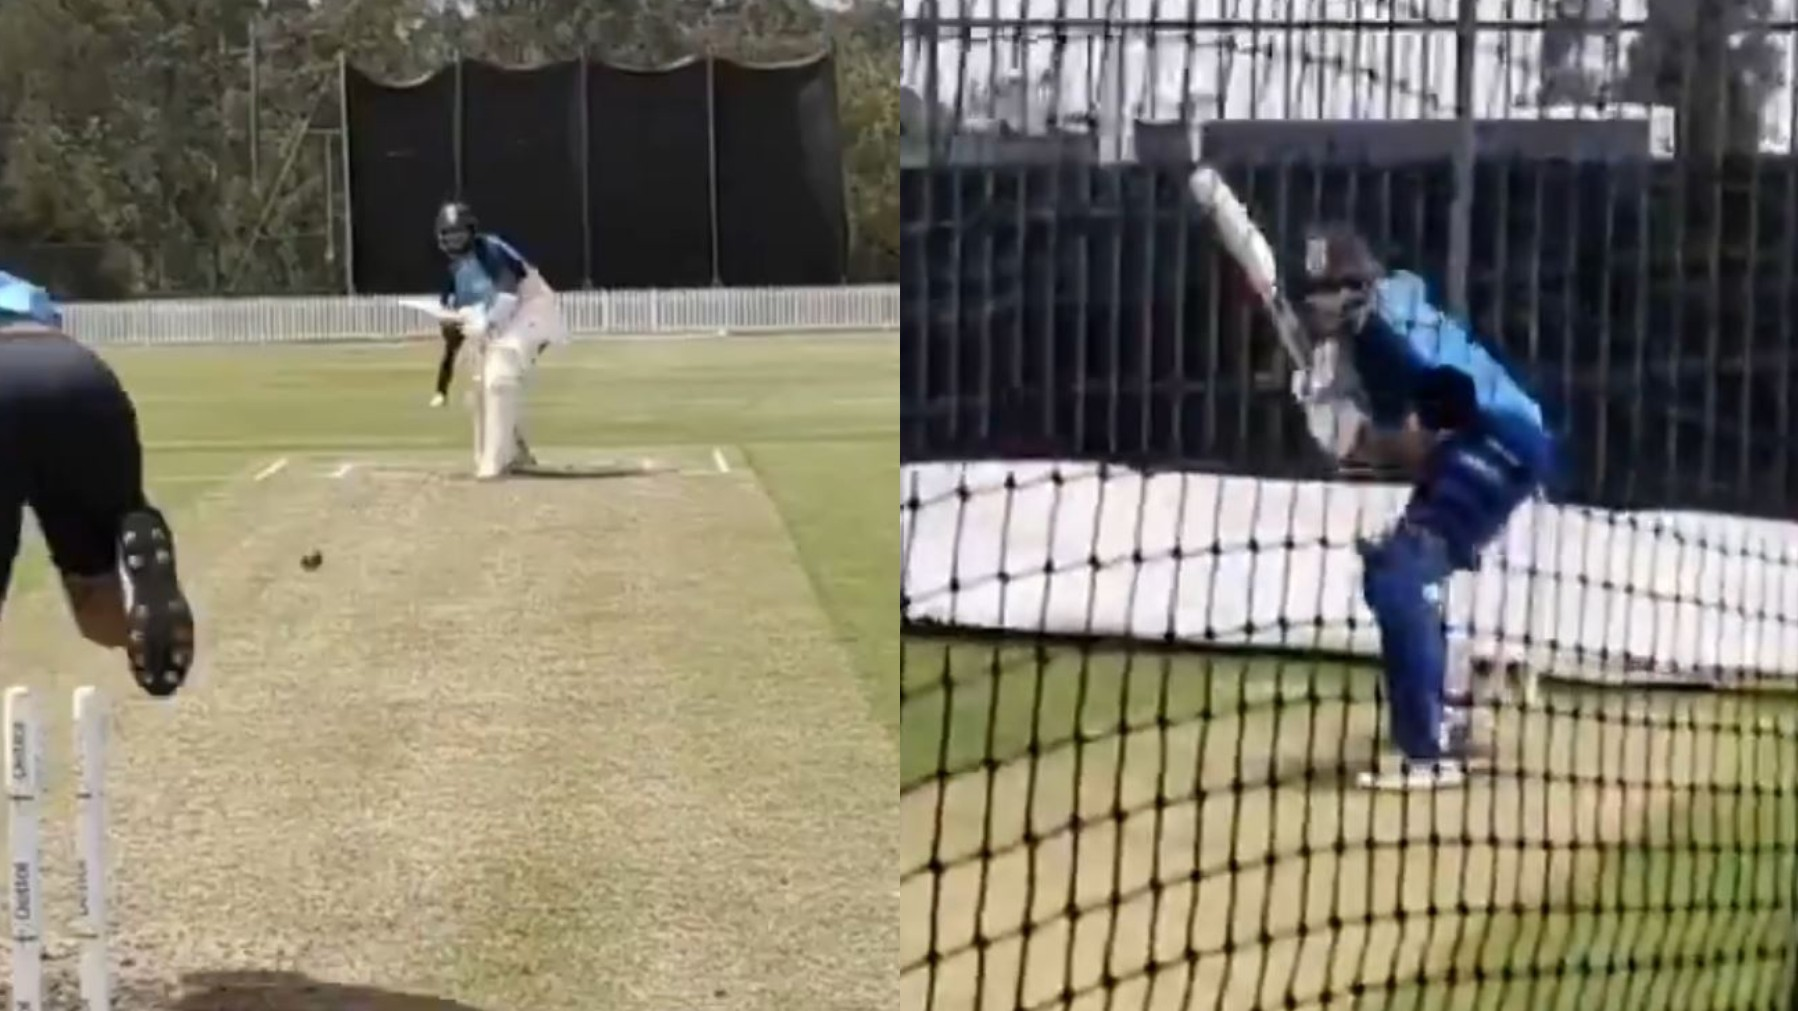 AUS v IND 2020-21: Cheteshwar Pujara and Mayank Agarwal sweat it out in nets ahead of Australia series